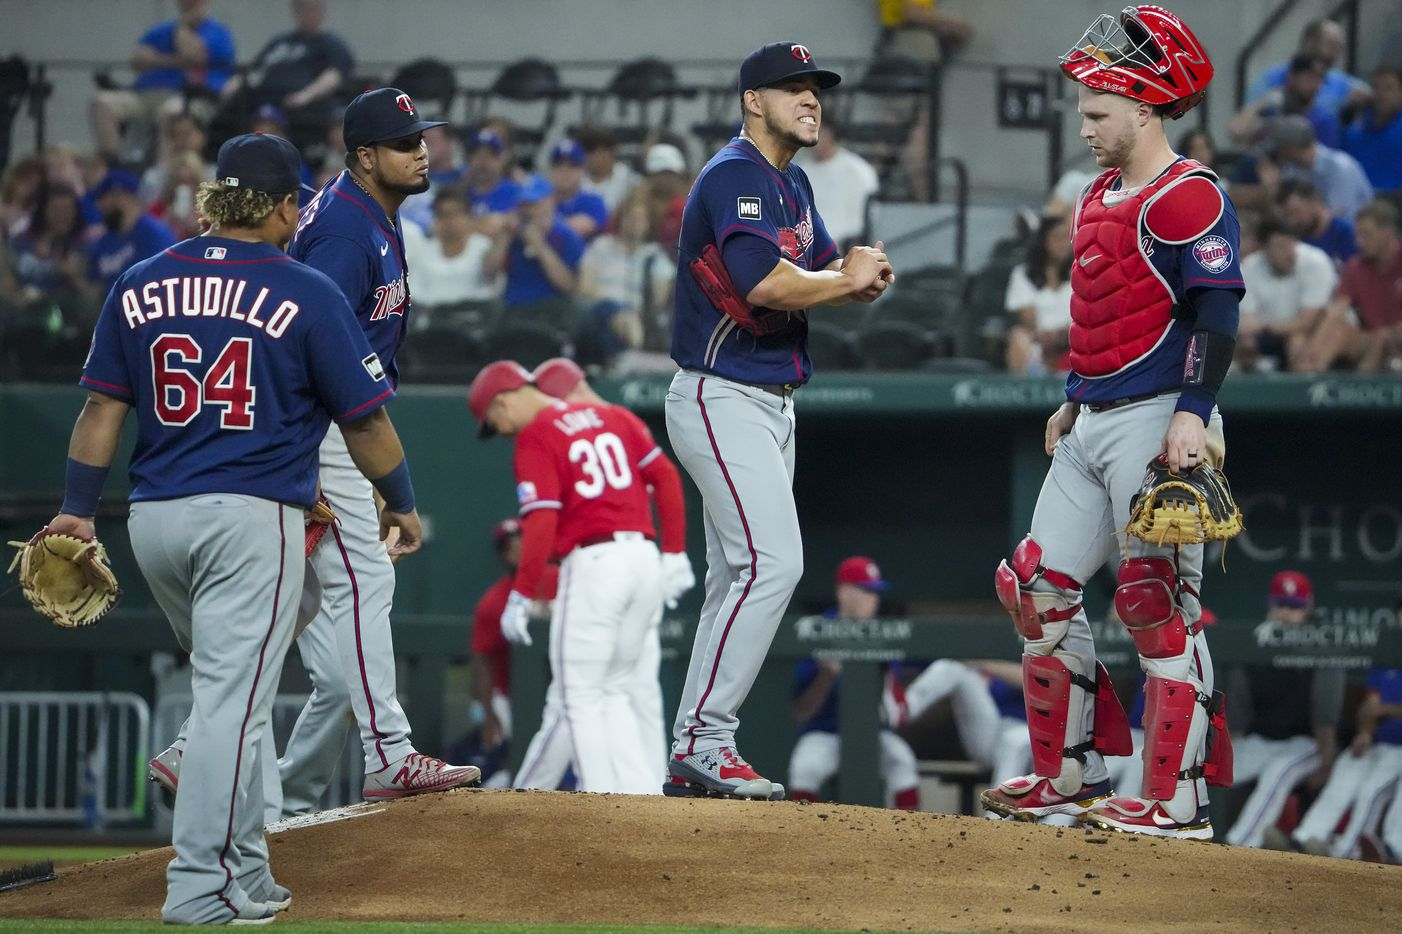 Minnesota Twins starting pitcher Jose Berrios gets a visit from catcher Ryan Jeffers after walking Texas Rangers first baseman Nate Lowe (30) during the second inning at Globe Life Field on Friday, June 18, 2021.